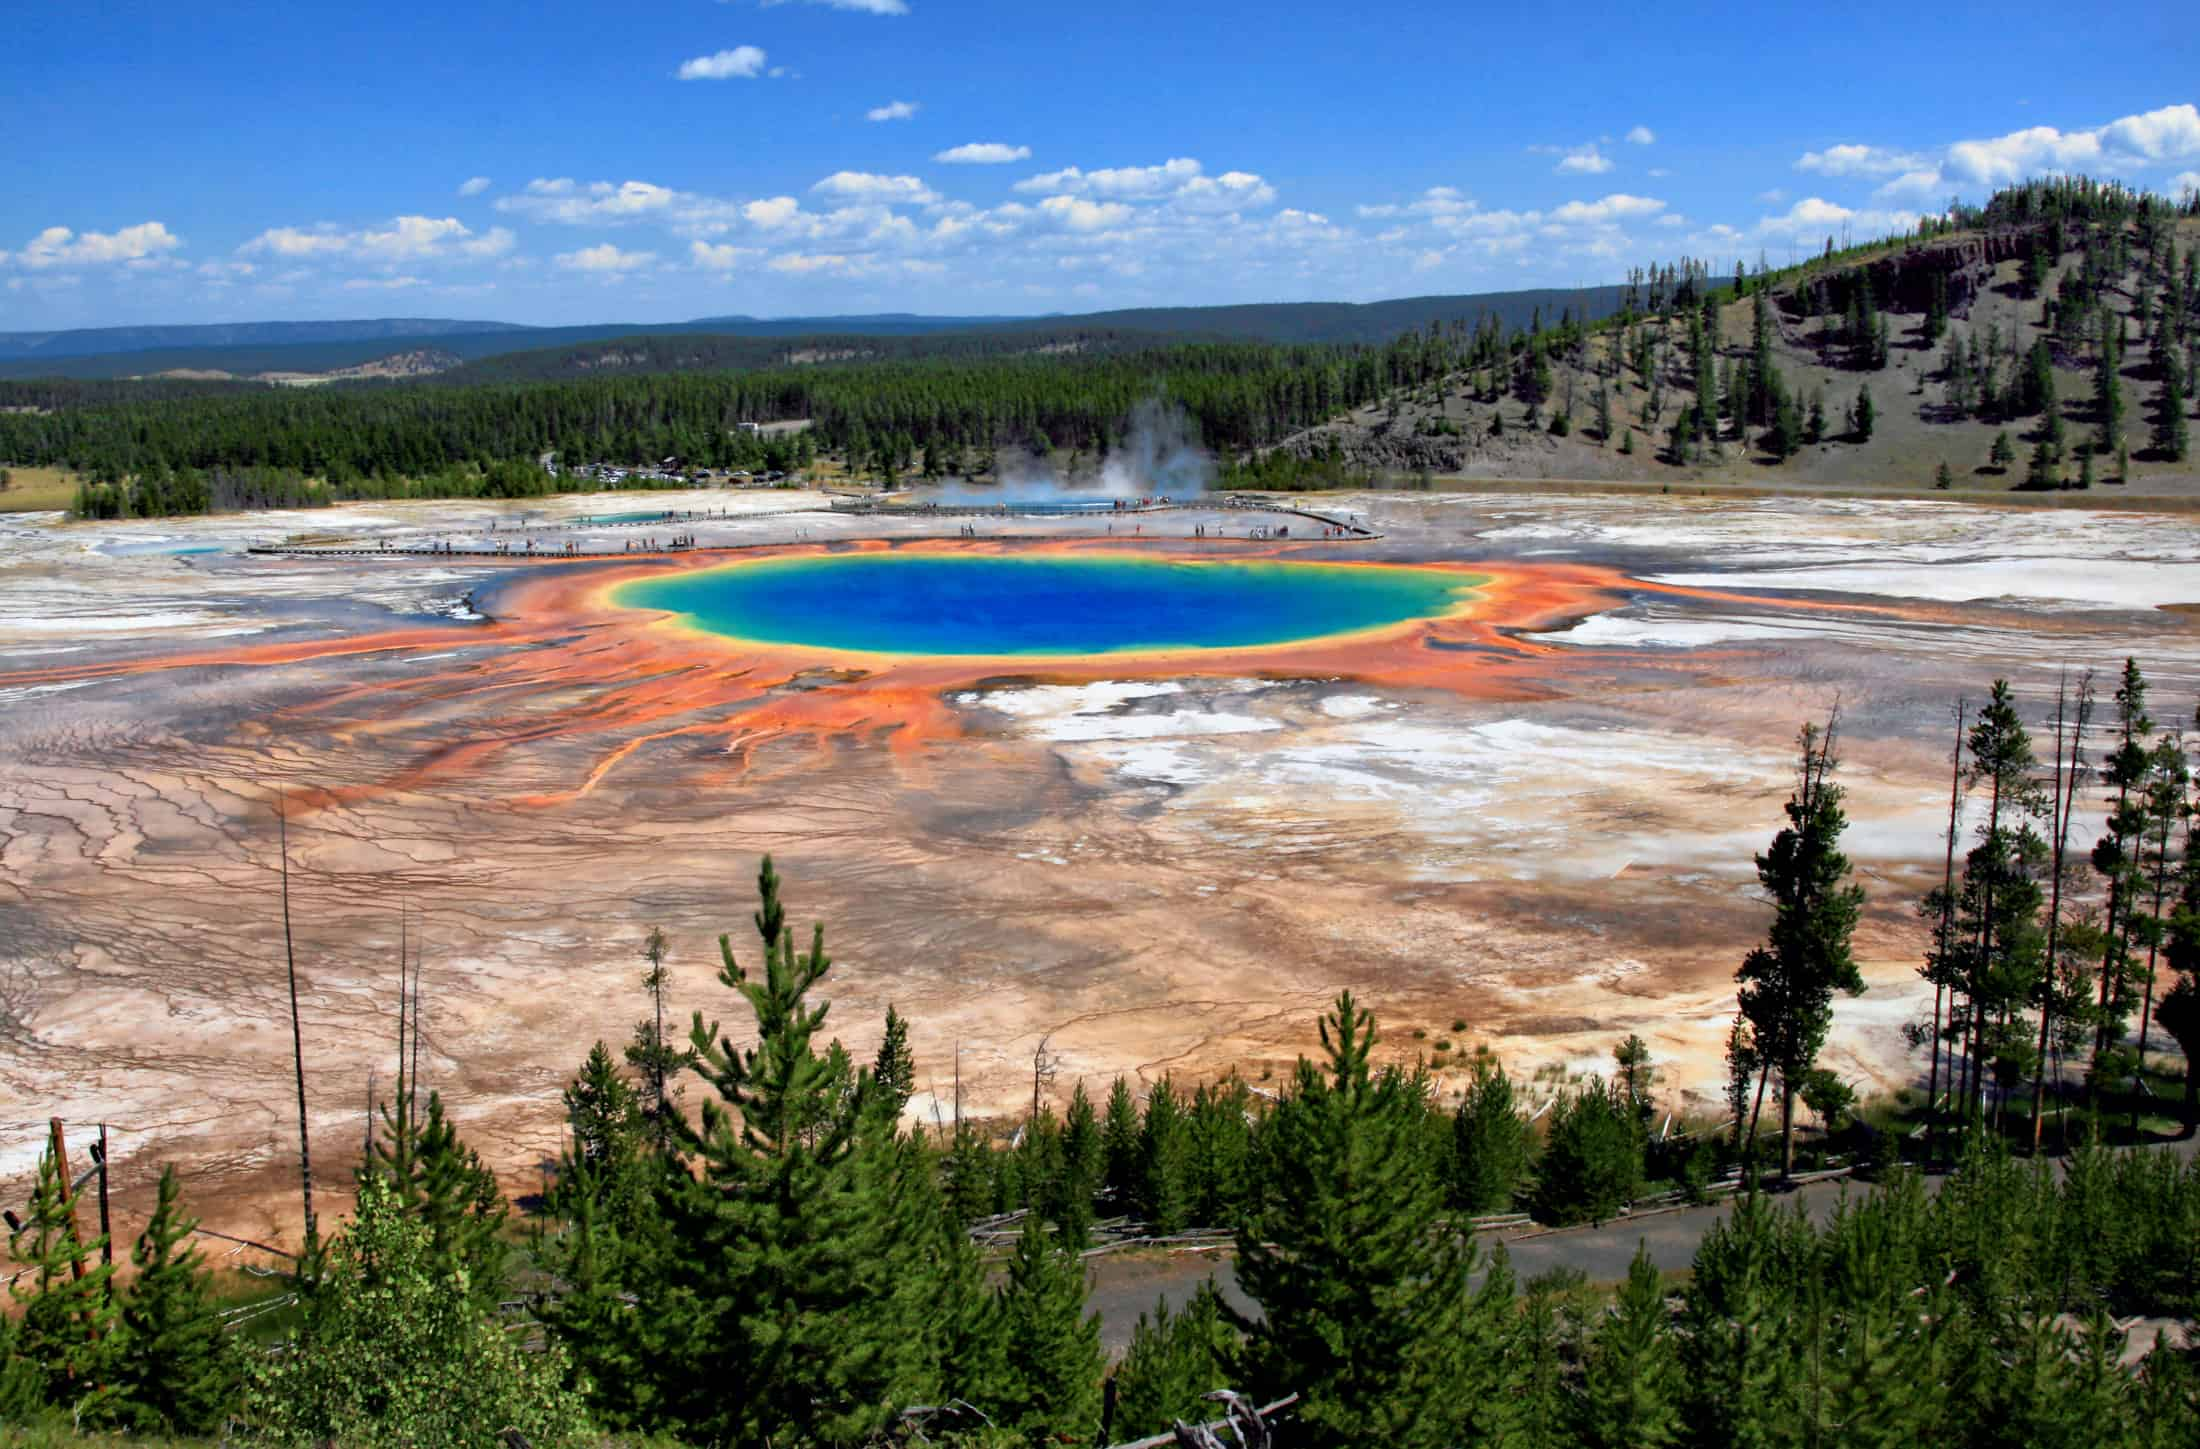 Yellowstone National Park - Best Family Vacations Spots in the USA